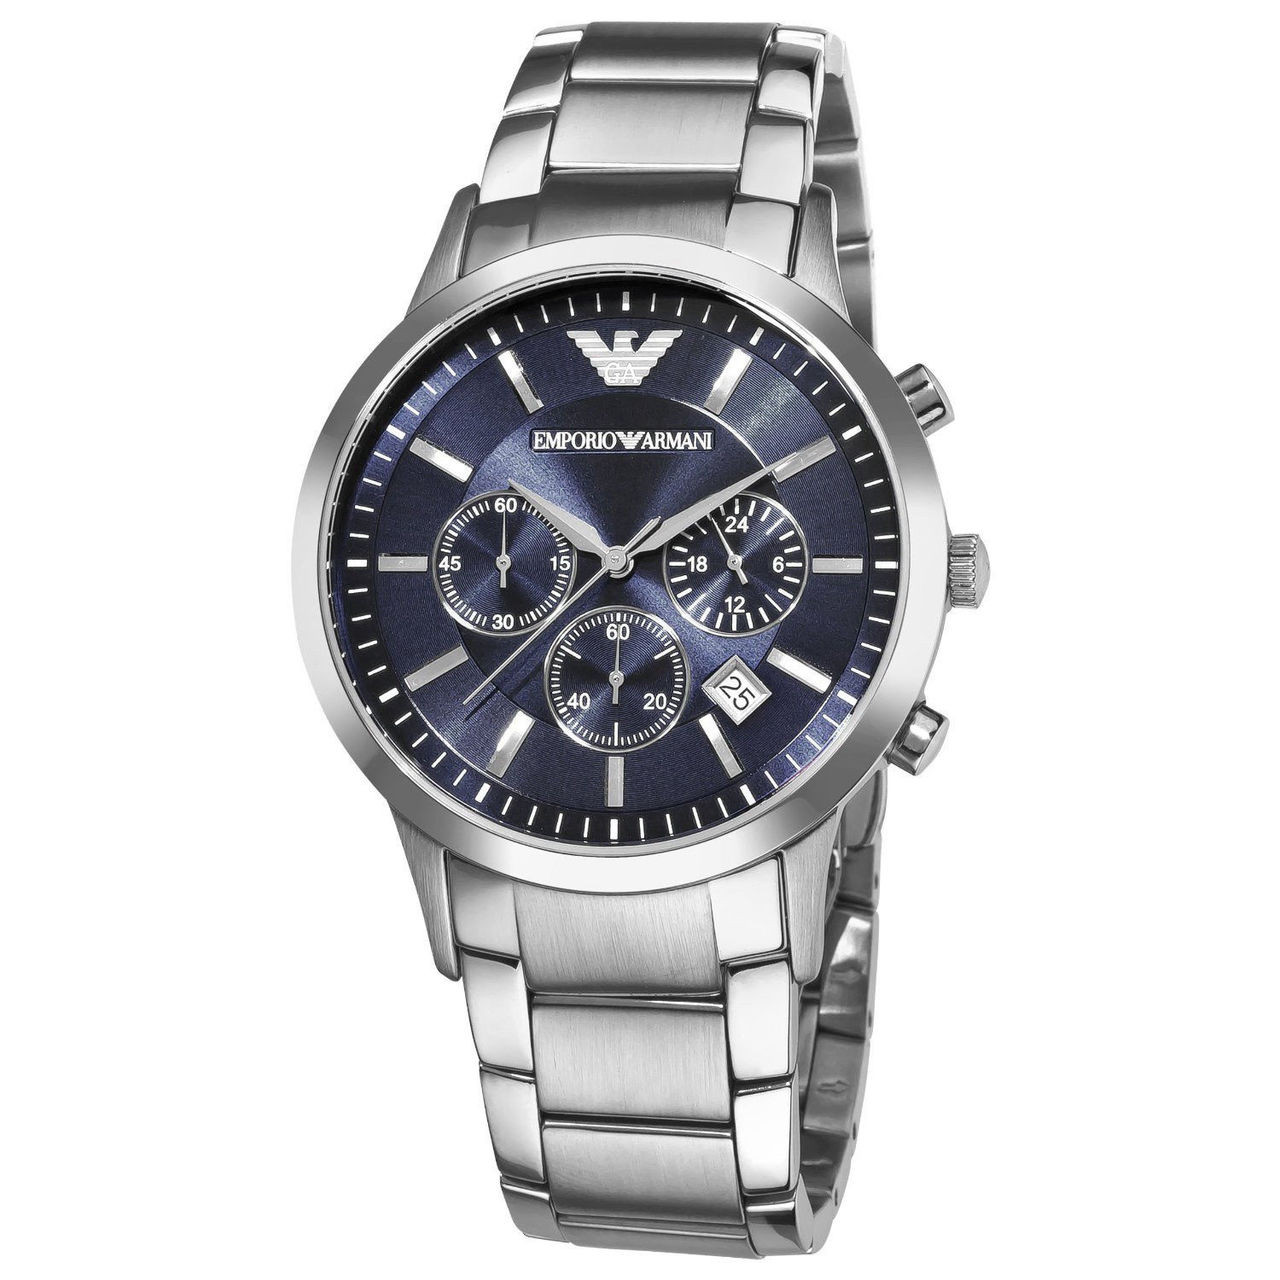 031c4fc757cf Emporio Armani AR2448 Classic Chronograph Blue Dial Stainless Steel Mens  Watch - The Royal Gift Inc.